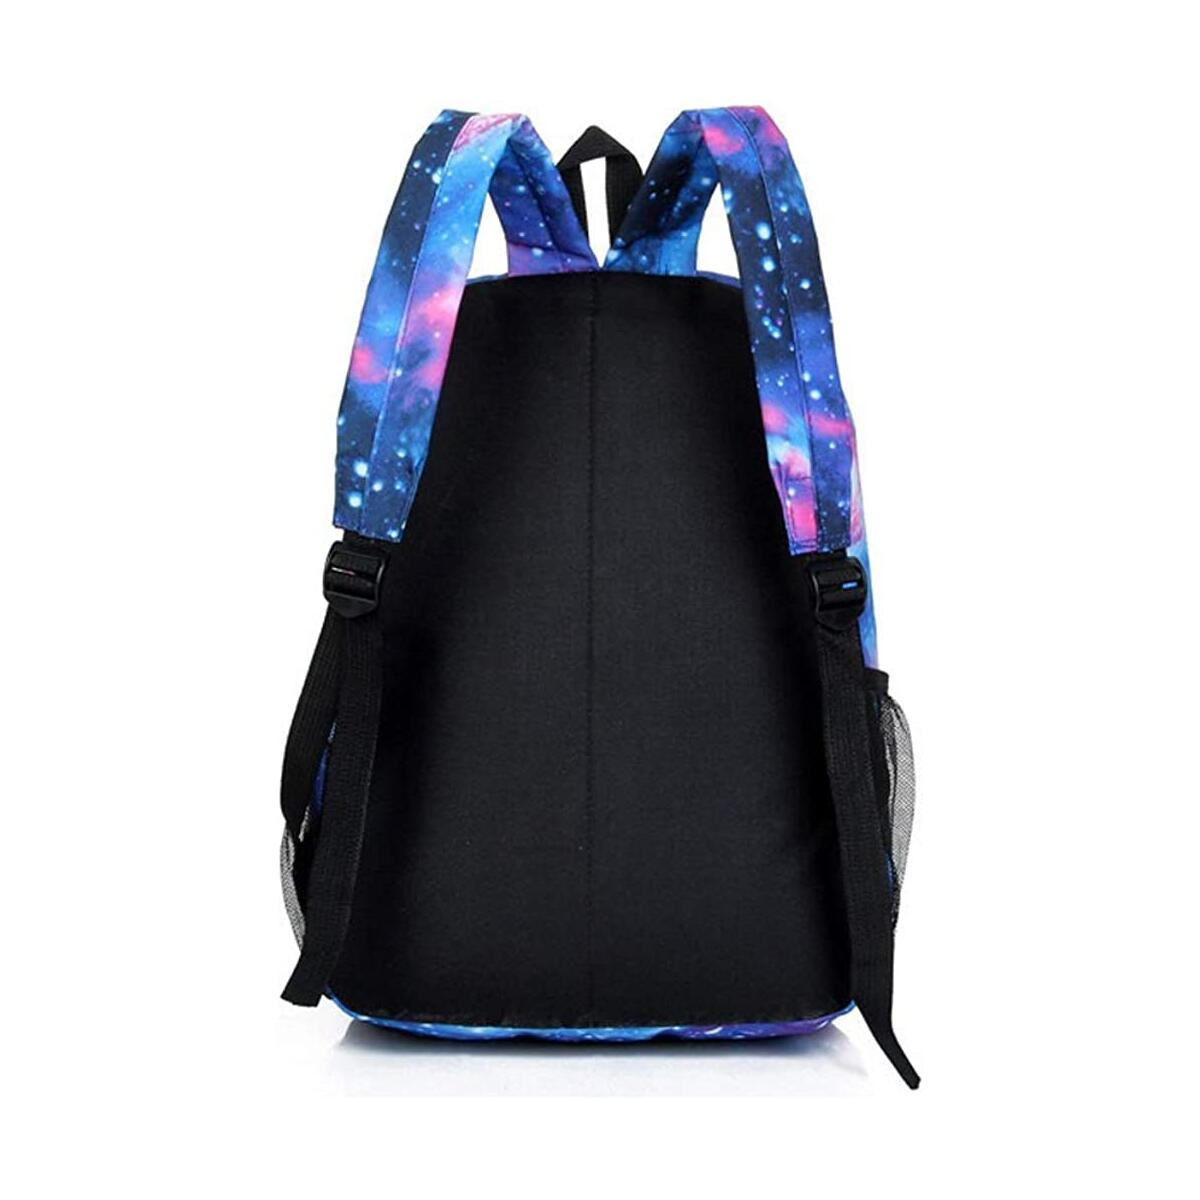 15 Inch Backpack for Boys and Girls Unicorn School Bag for Kids Galaxy Daypack